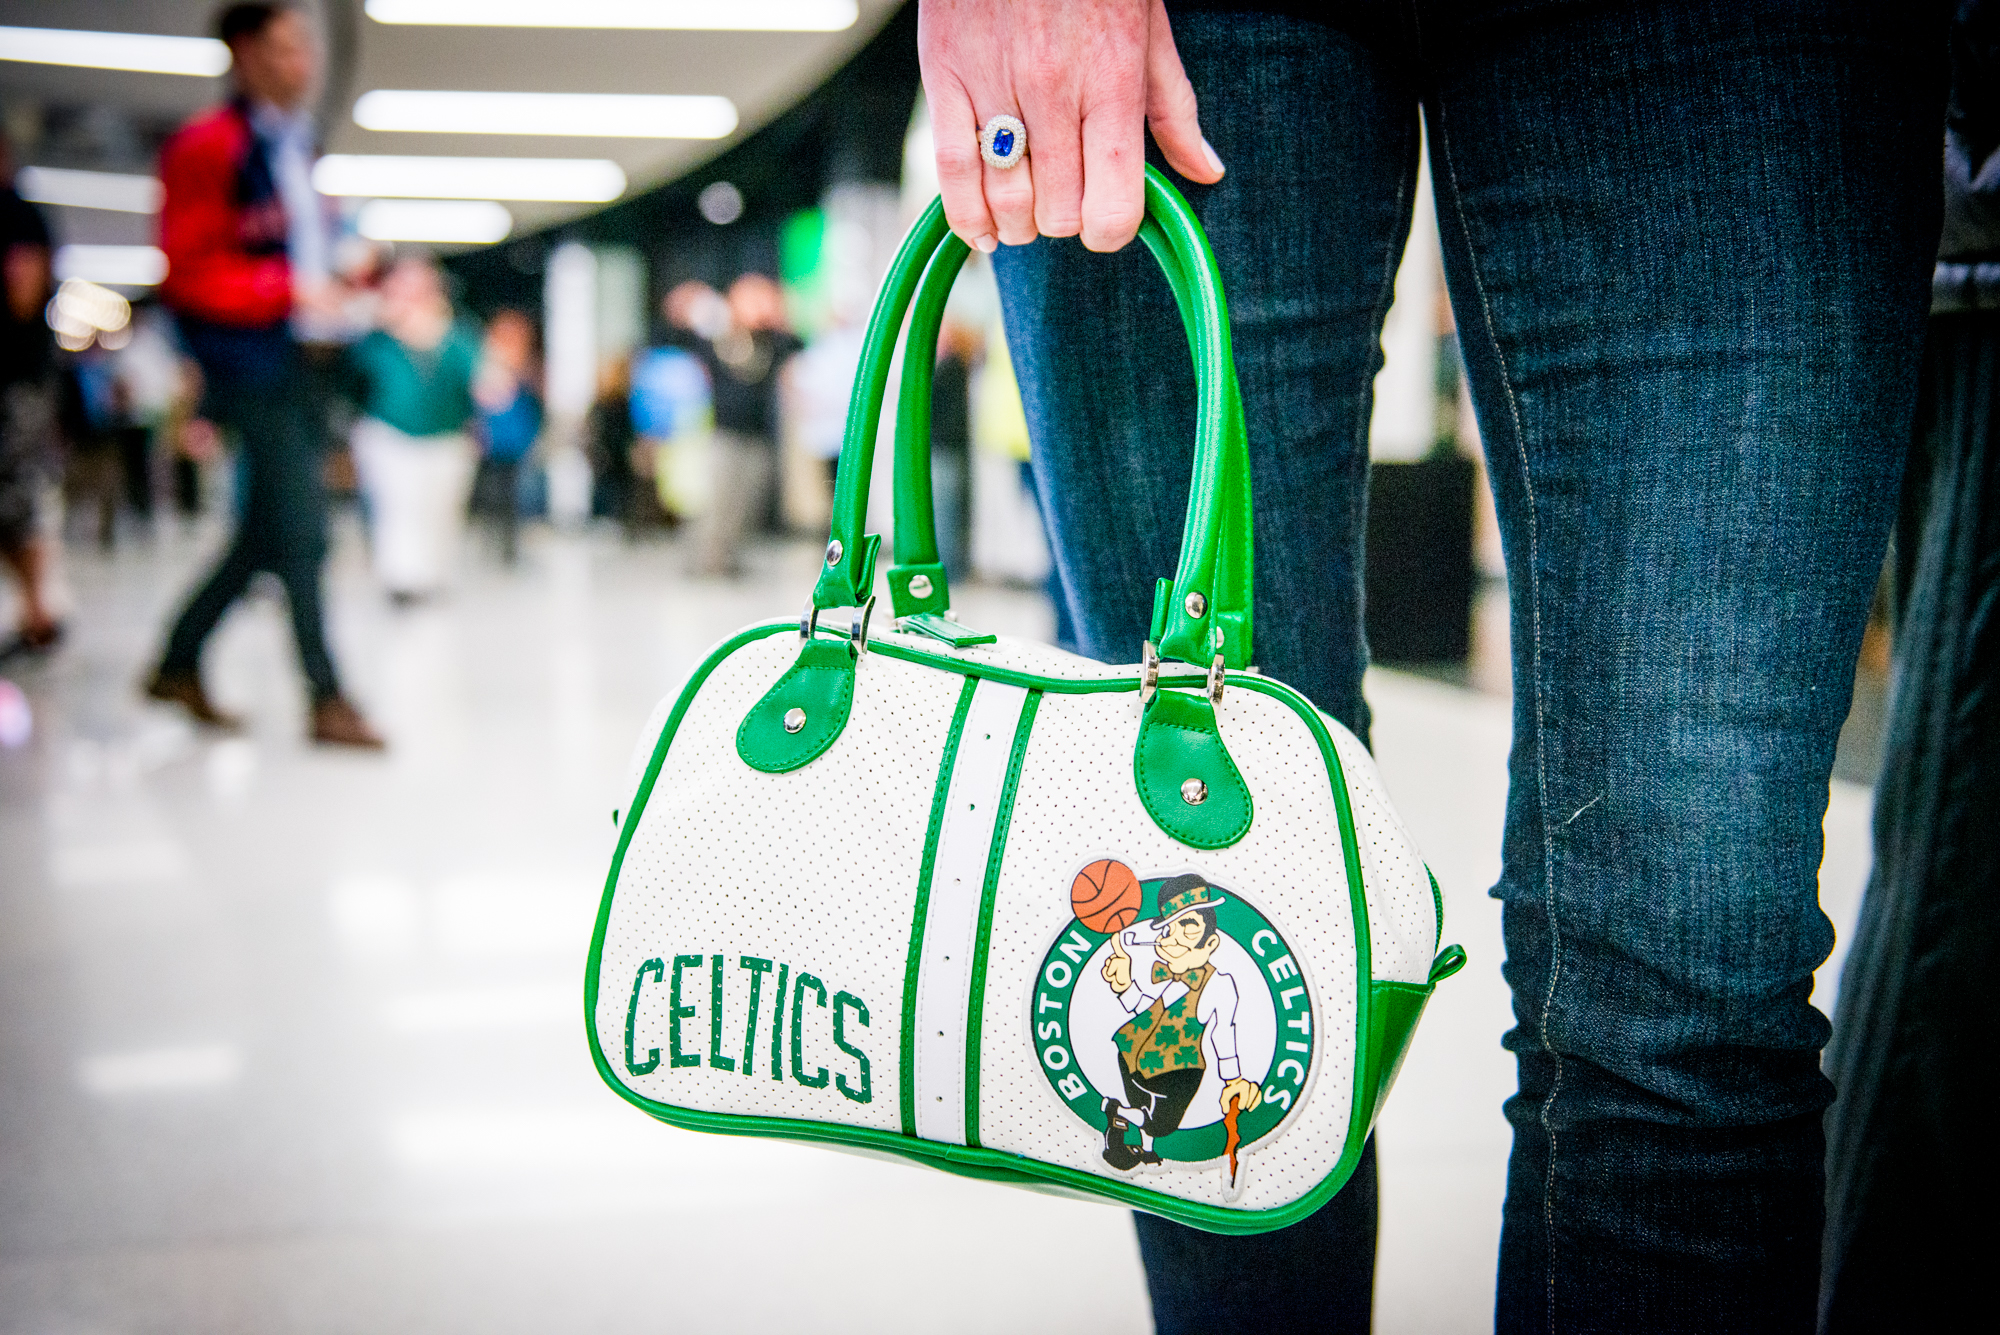 Celtics_Courtside_121615-606.jpg